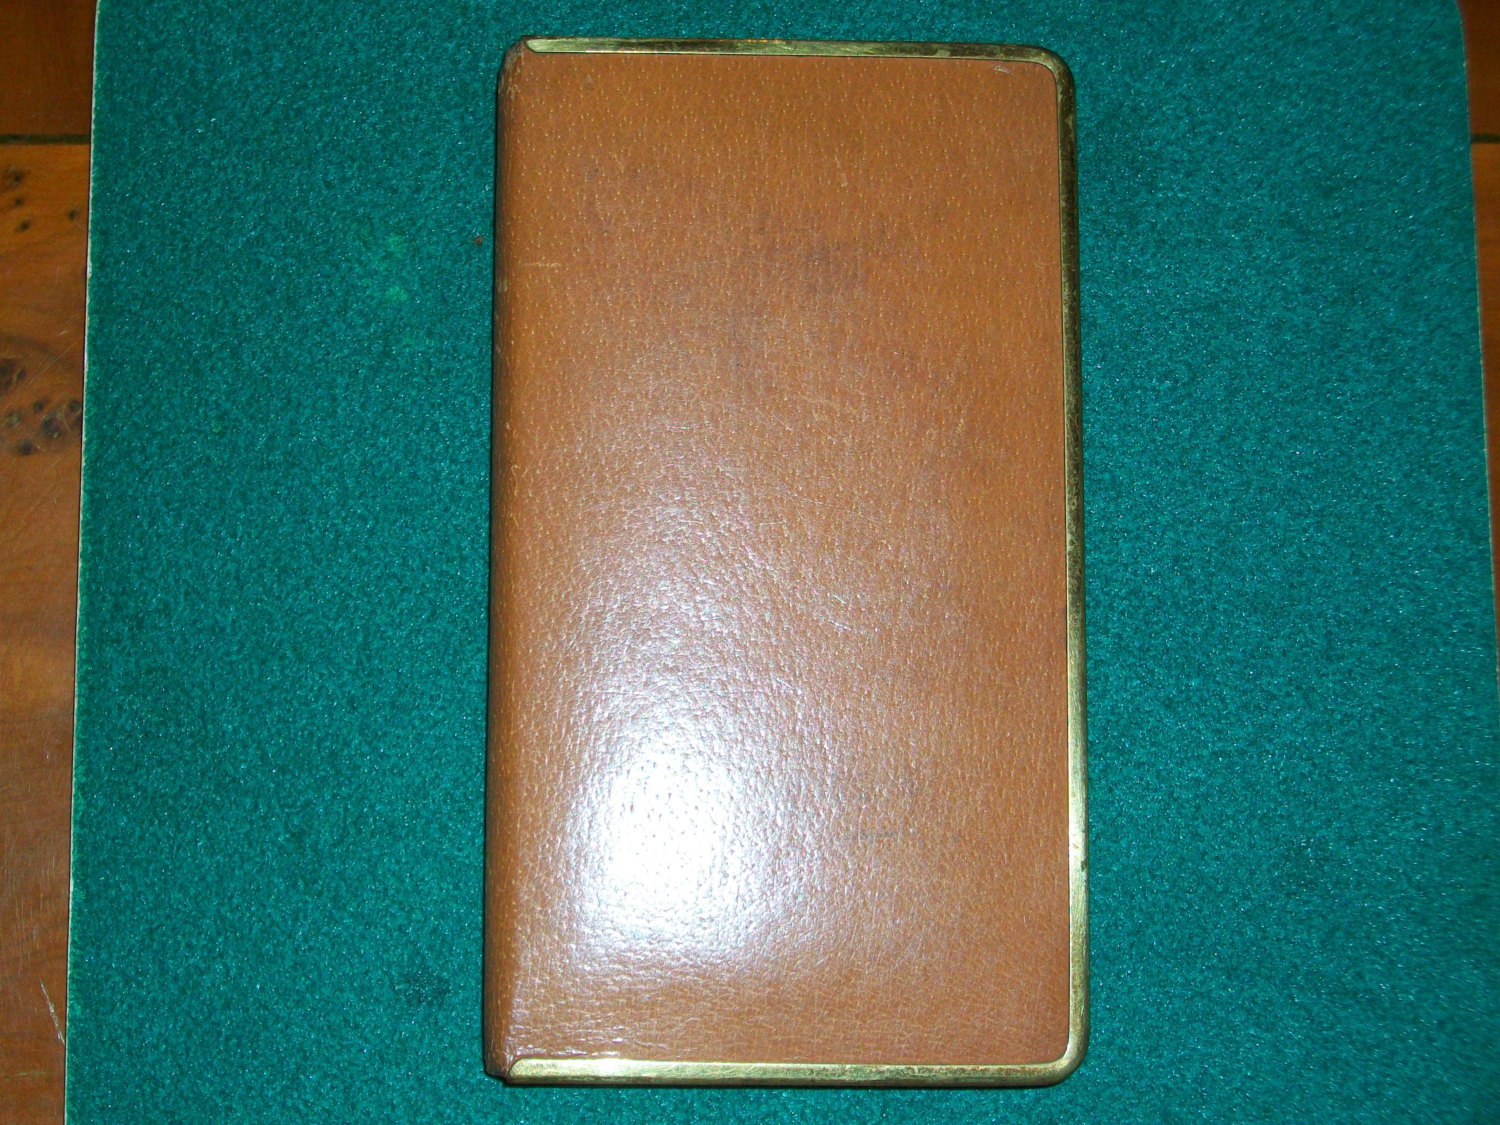 SALE, Antique, Vintage, c. 1940s ORLIK, Old Bond St, Cigarette Case